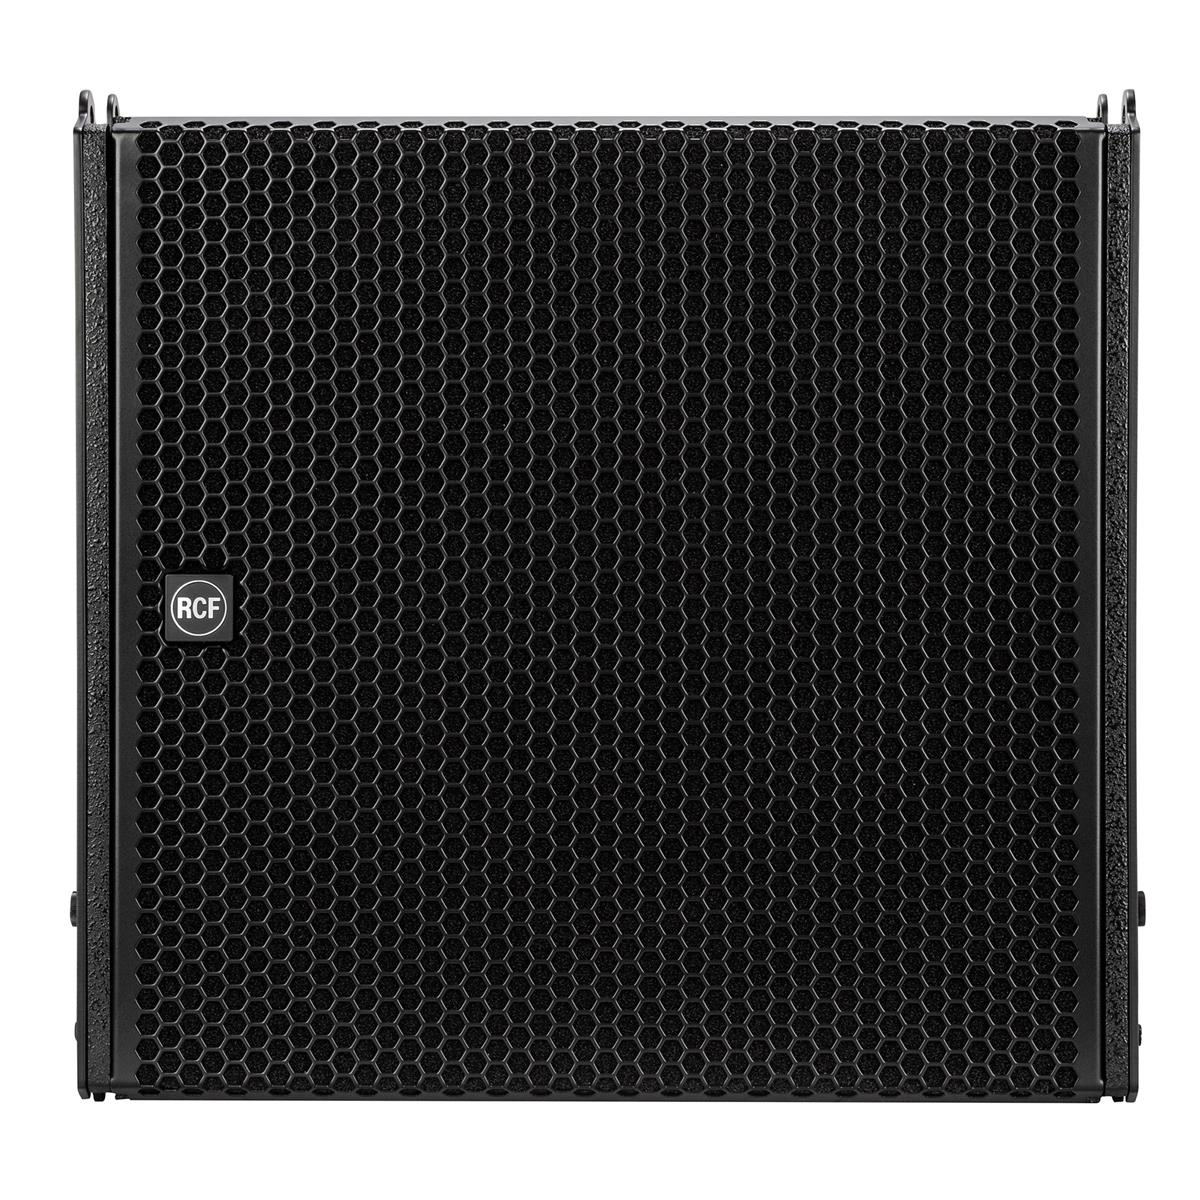 RCF Active line array subwoofer for HDL26, 15in, 1100Wrms, 2